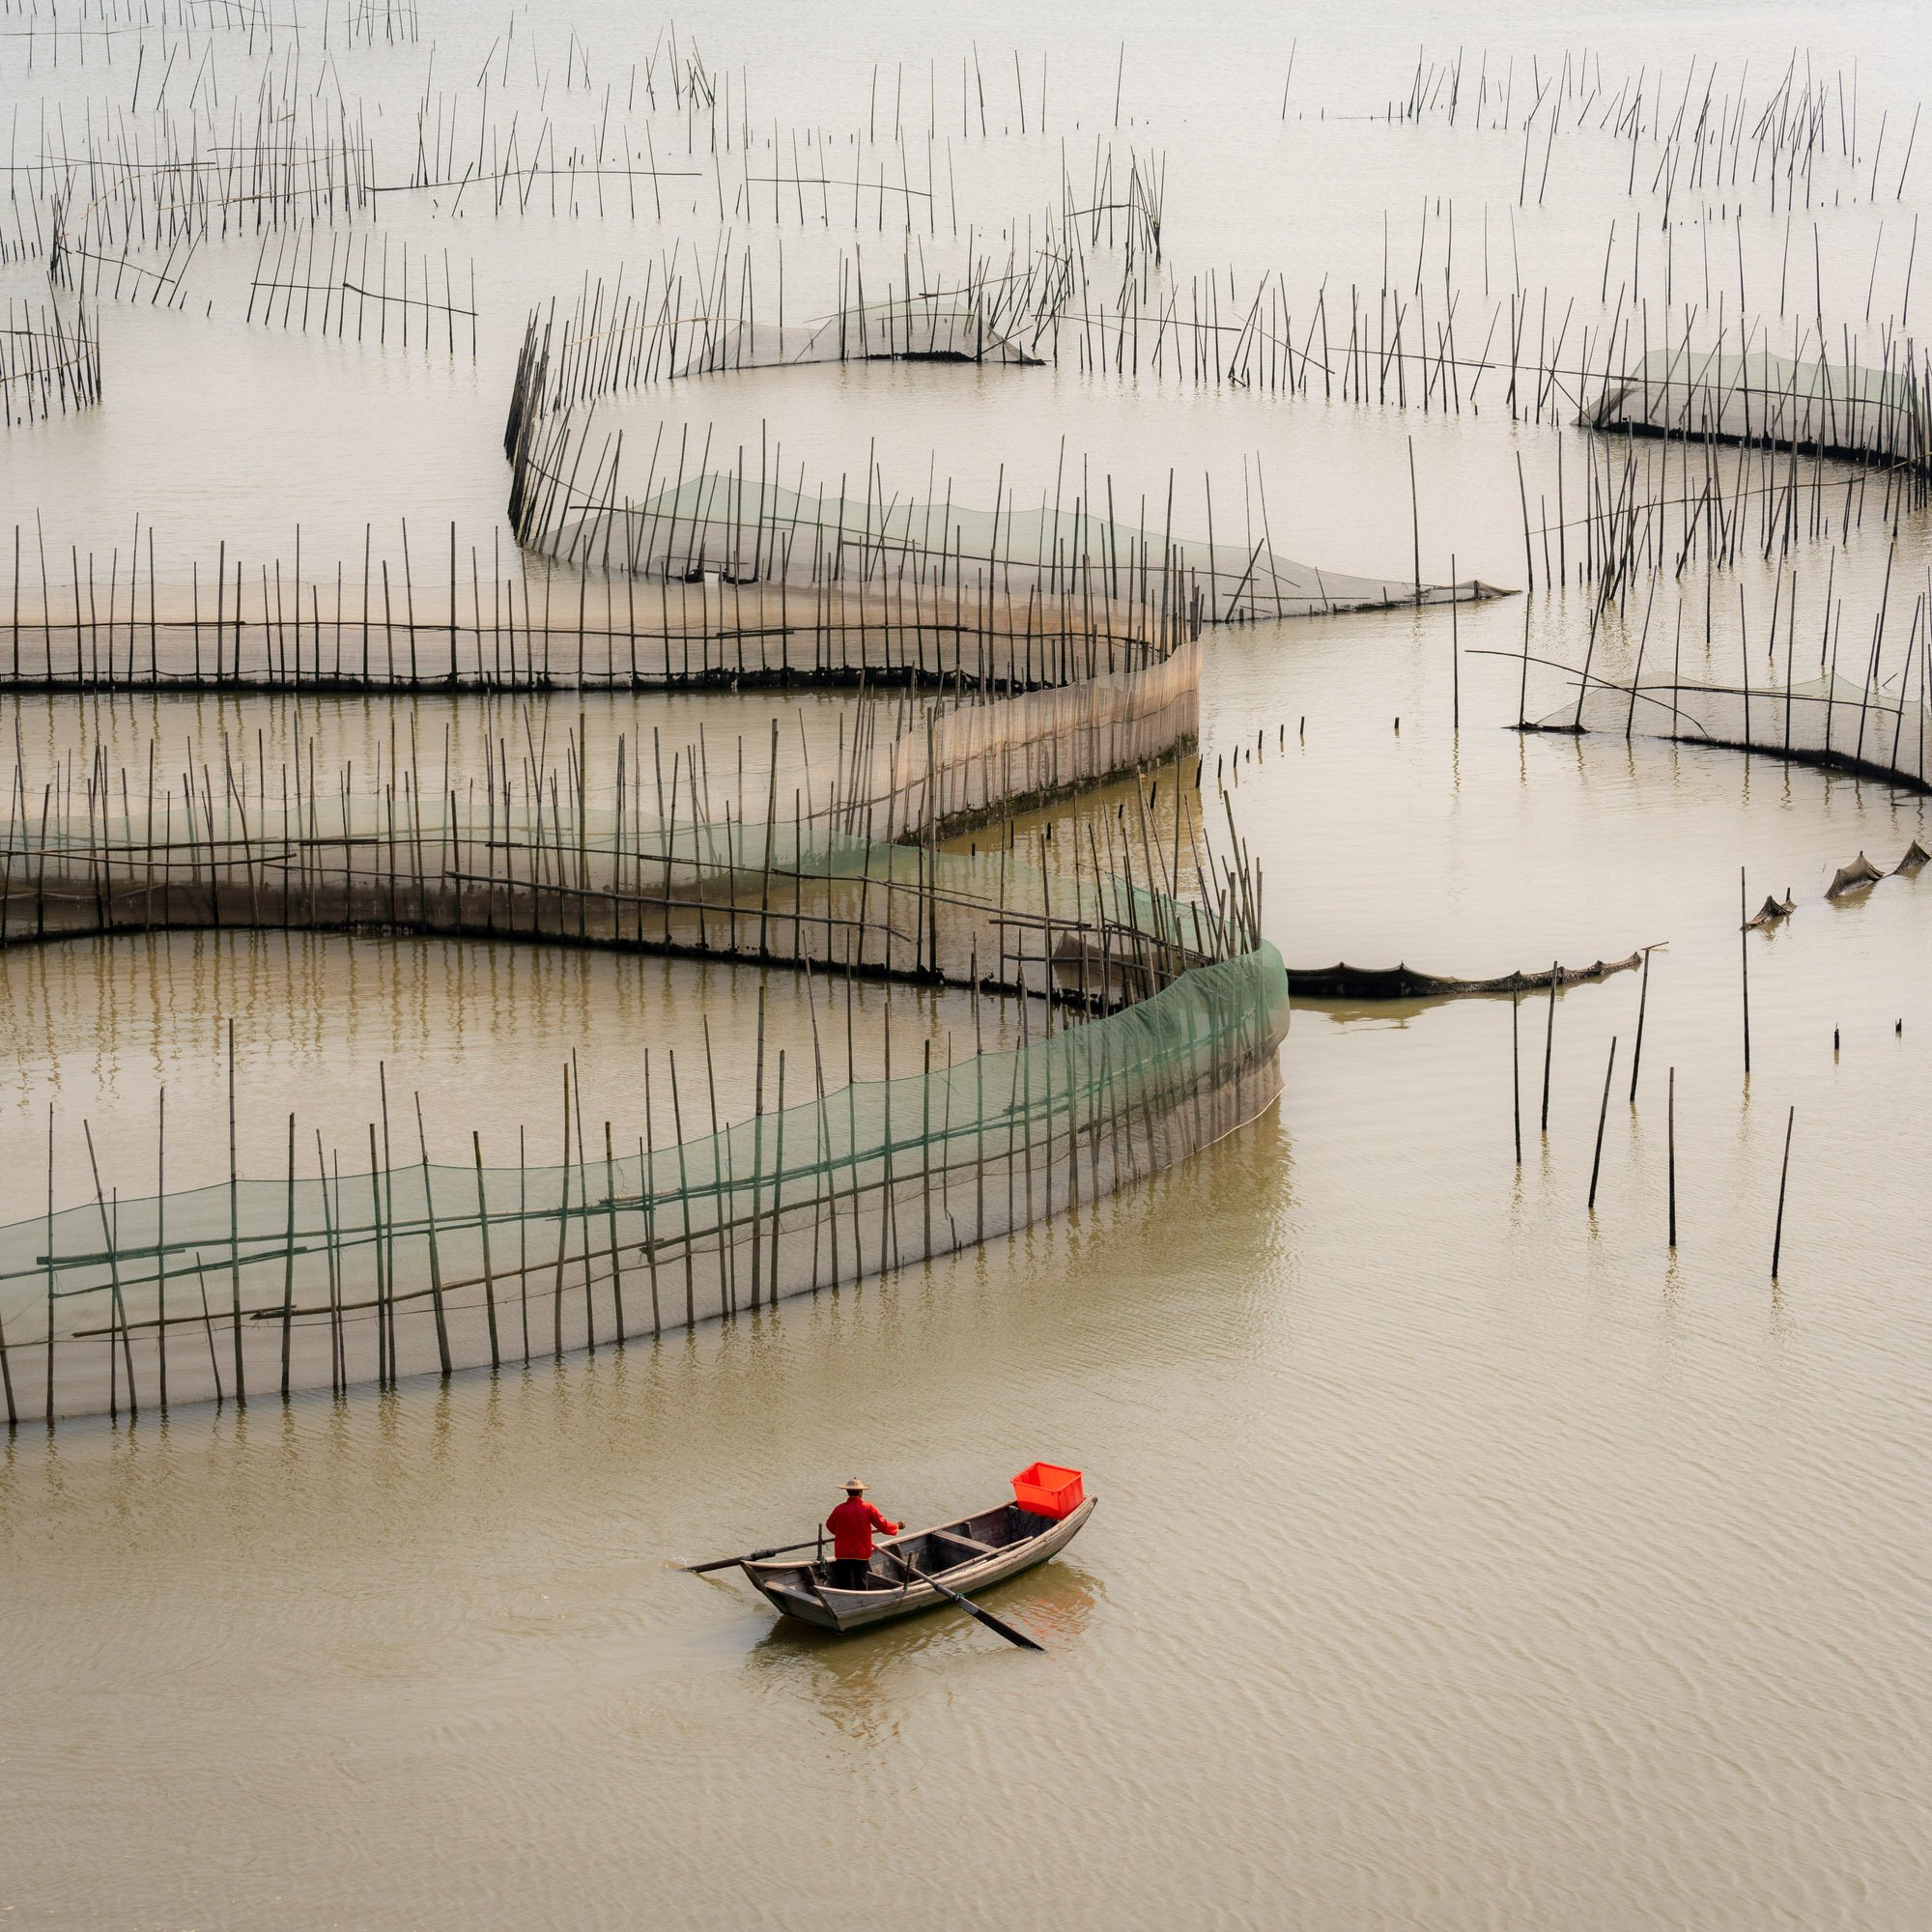 A fisherman entering the maze of fishing cages